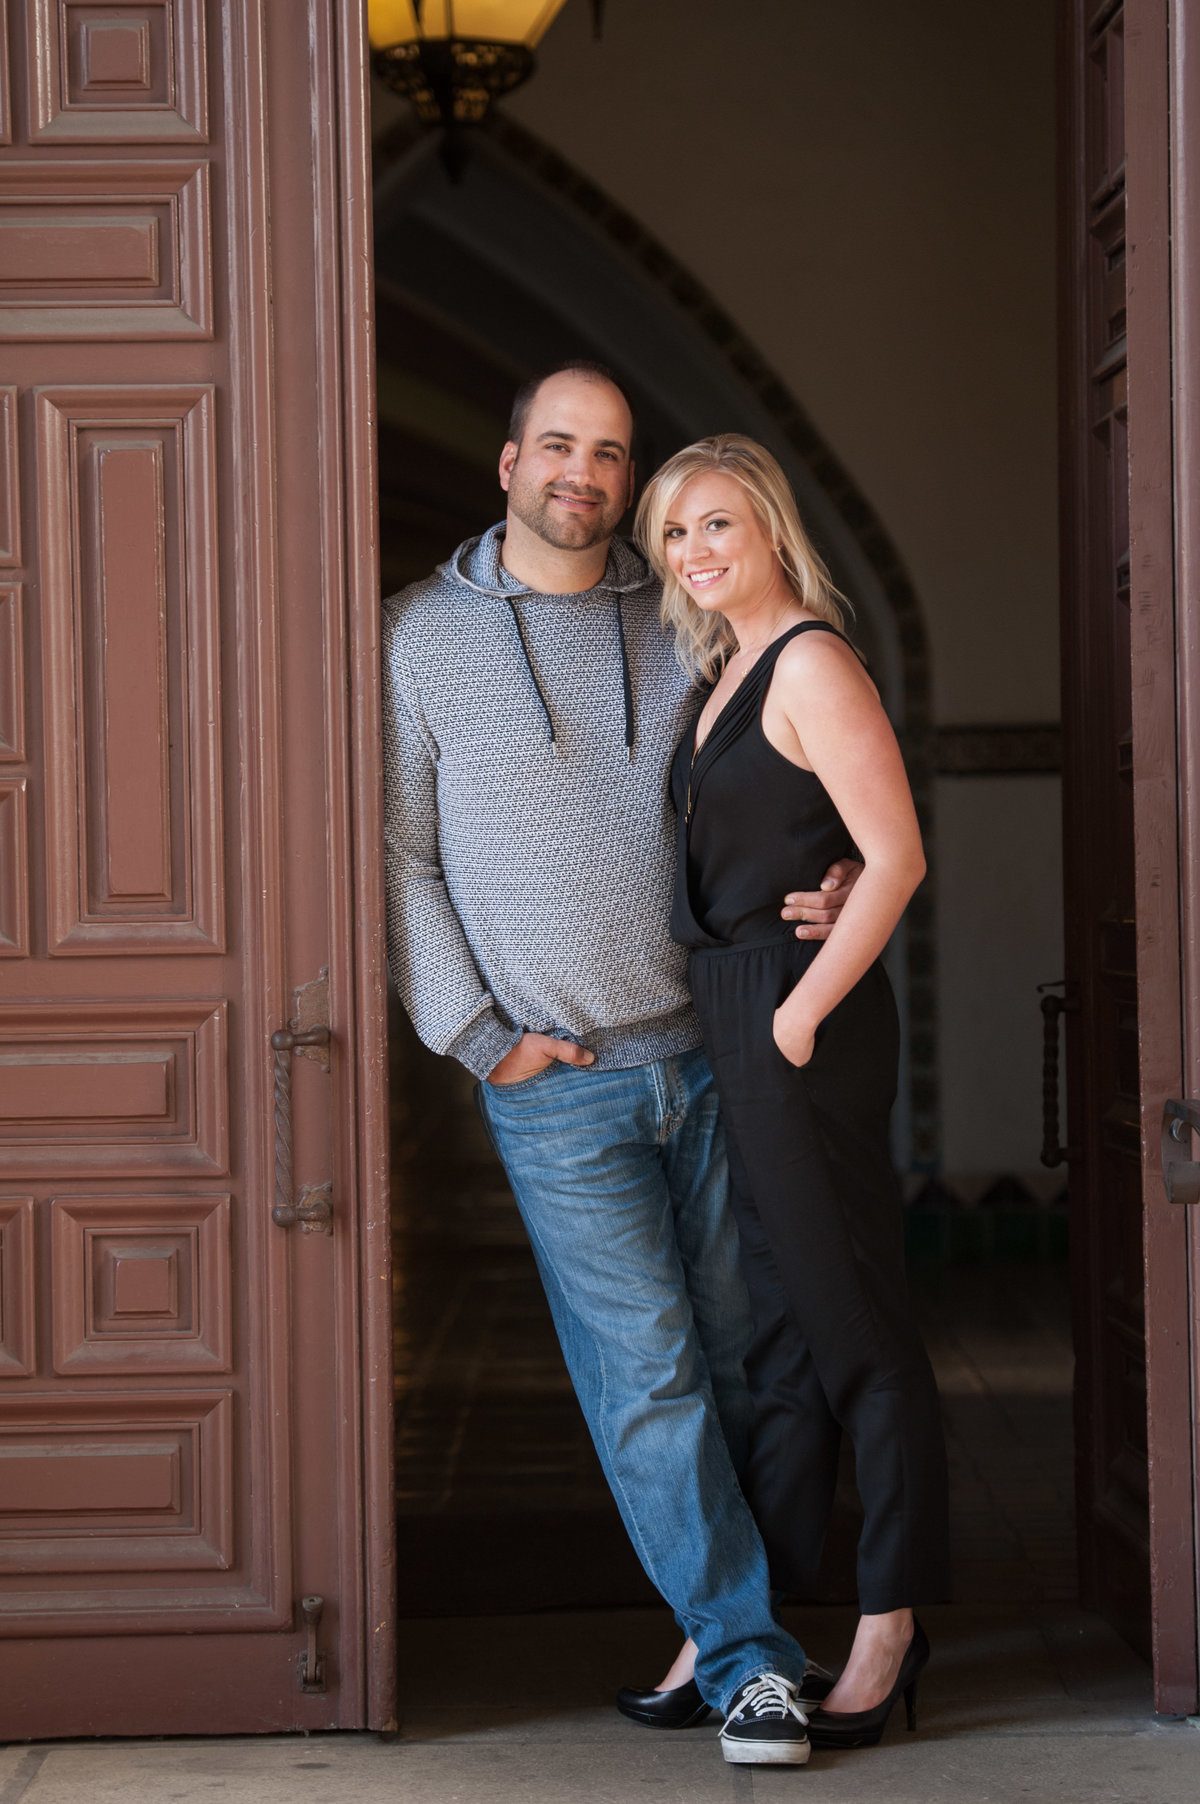 Santa-Barbara-Courthouse-Engagement-Photos-36 copy